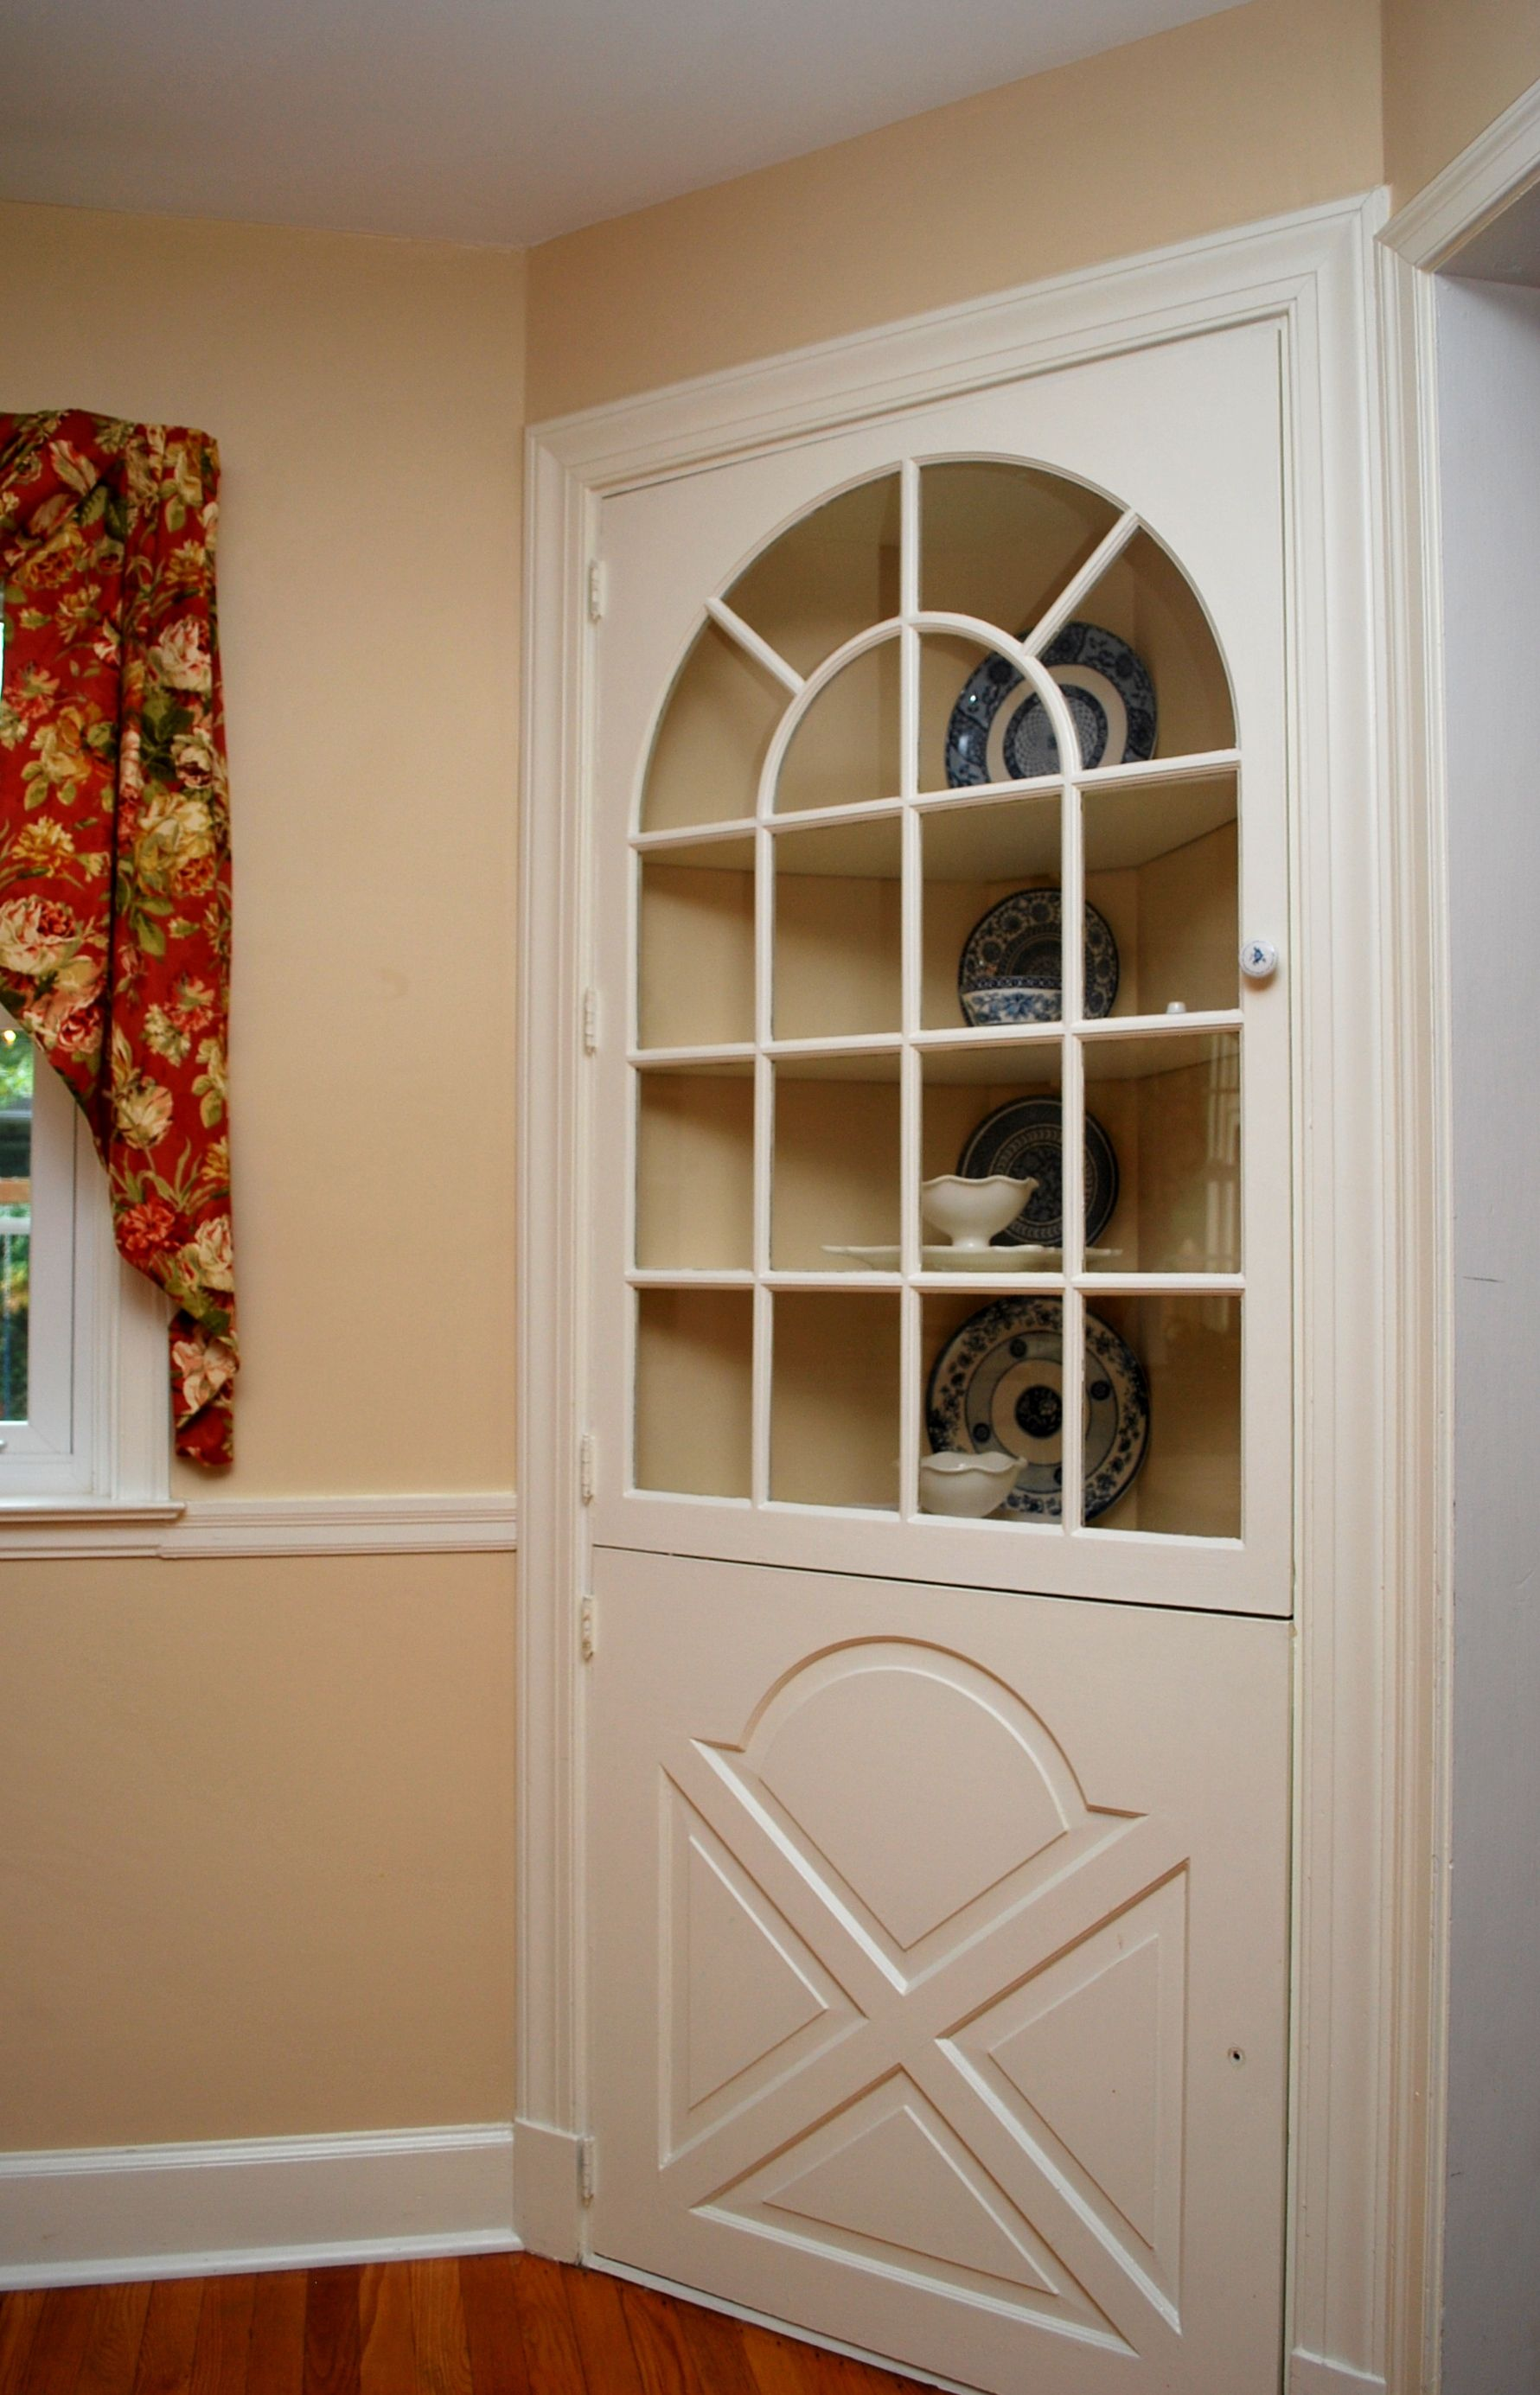 Another Built In Corner Cabinet With An Arched Window And More Detailed Cabinet Door Farmhouse Kitchen Remodel Corner Cabinet Dining Room Best Kitchen Cabinets